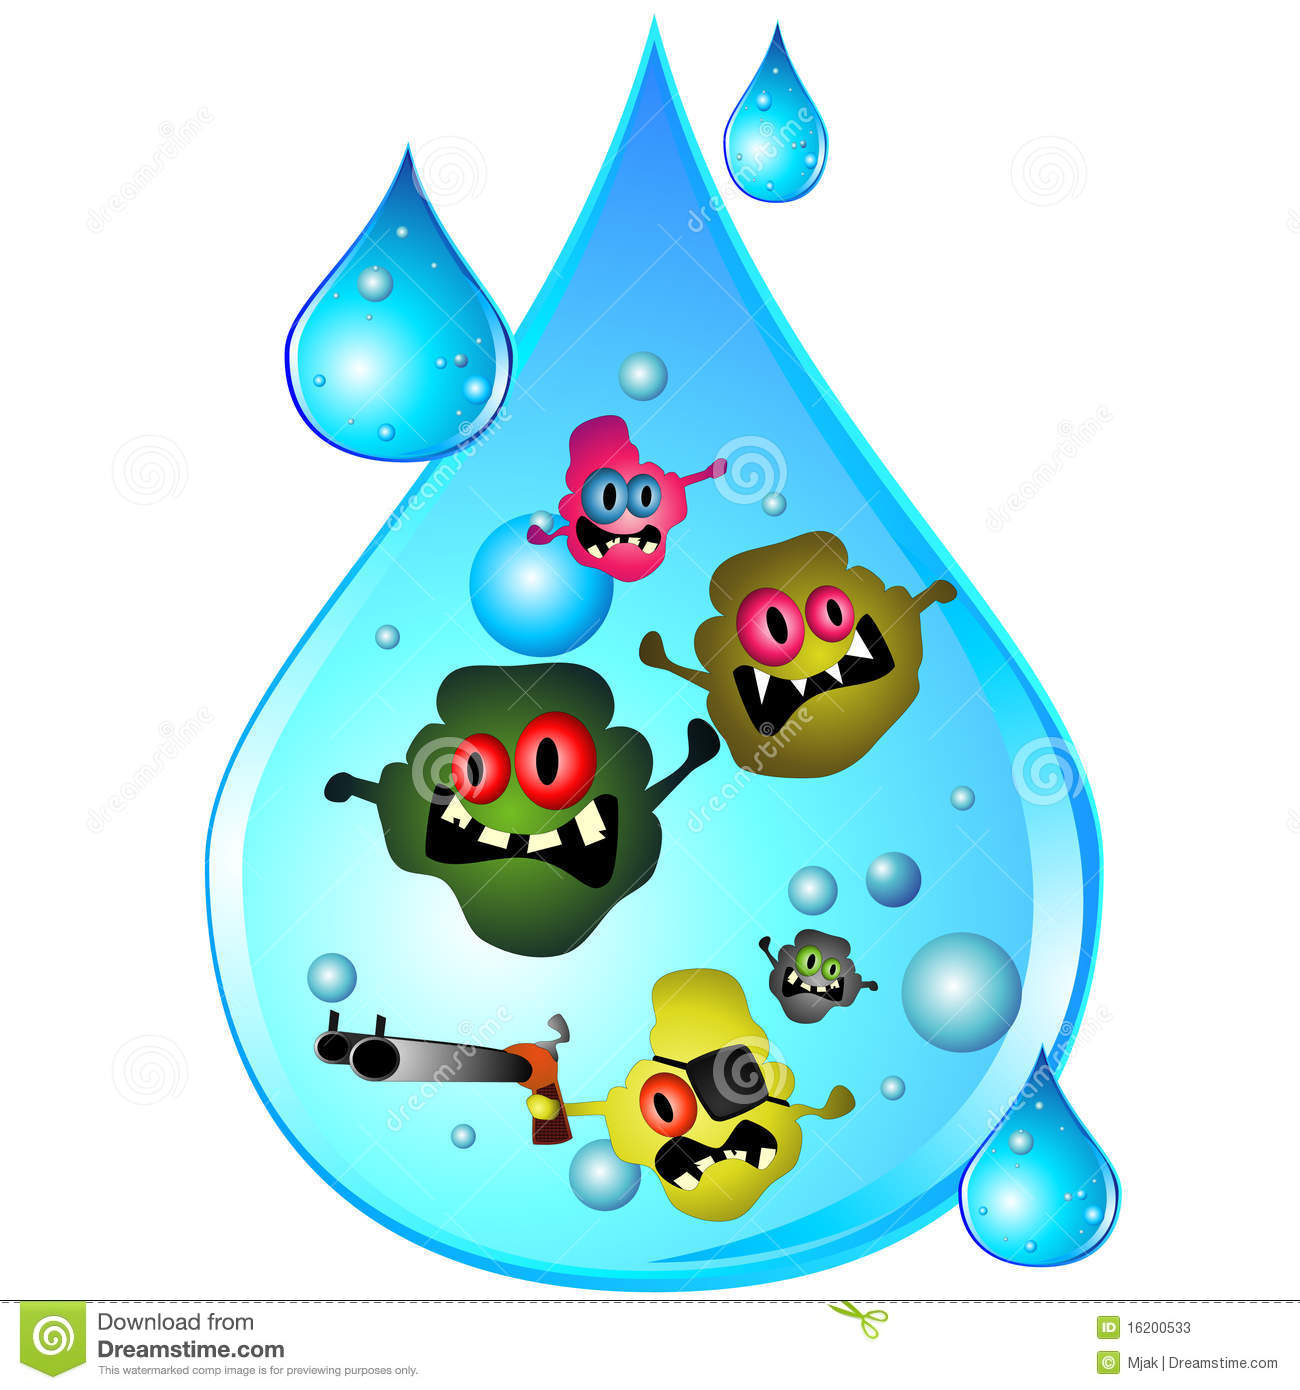 More similar stock images of ` Drop of dirty water `